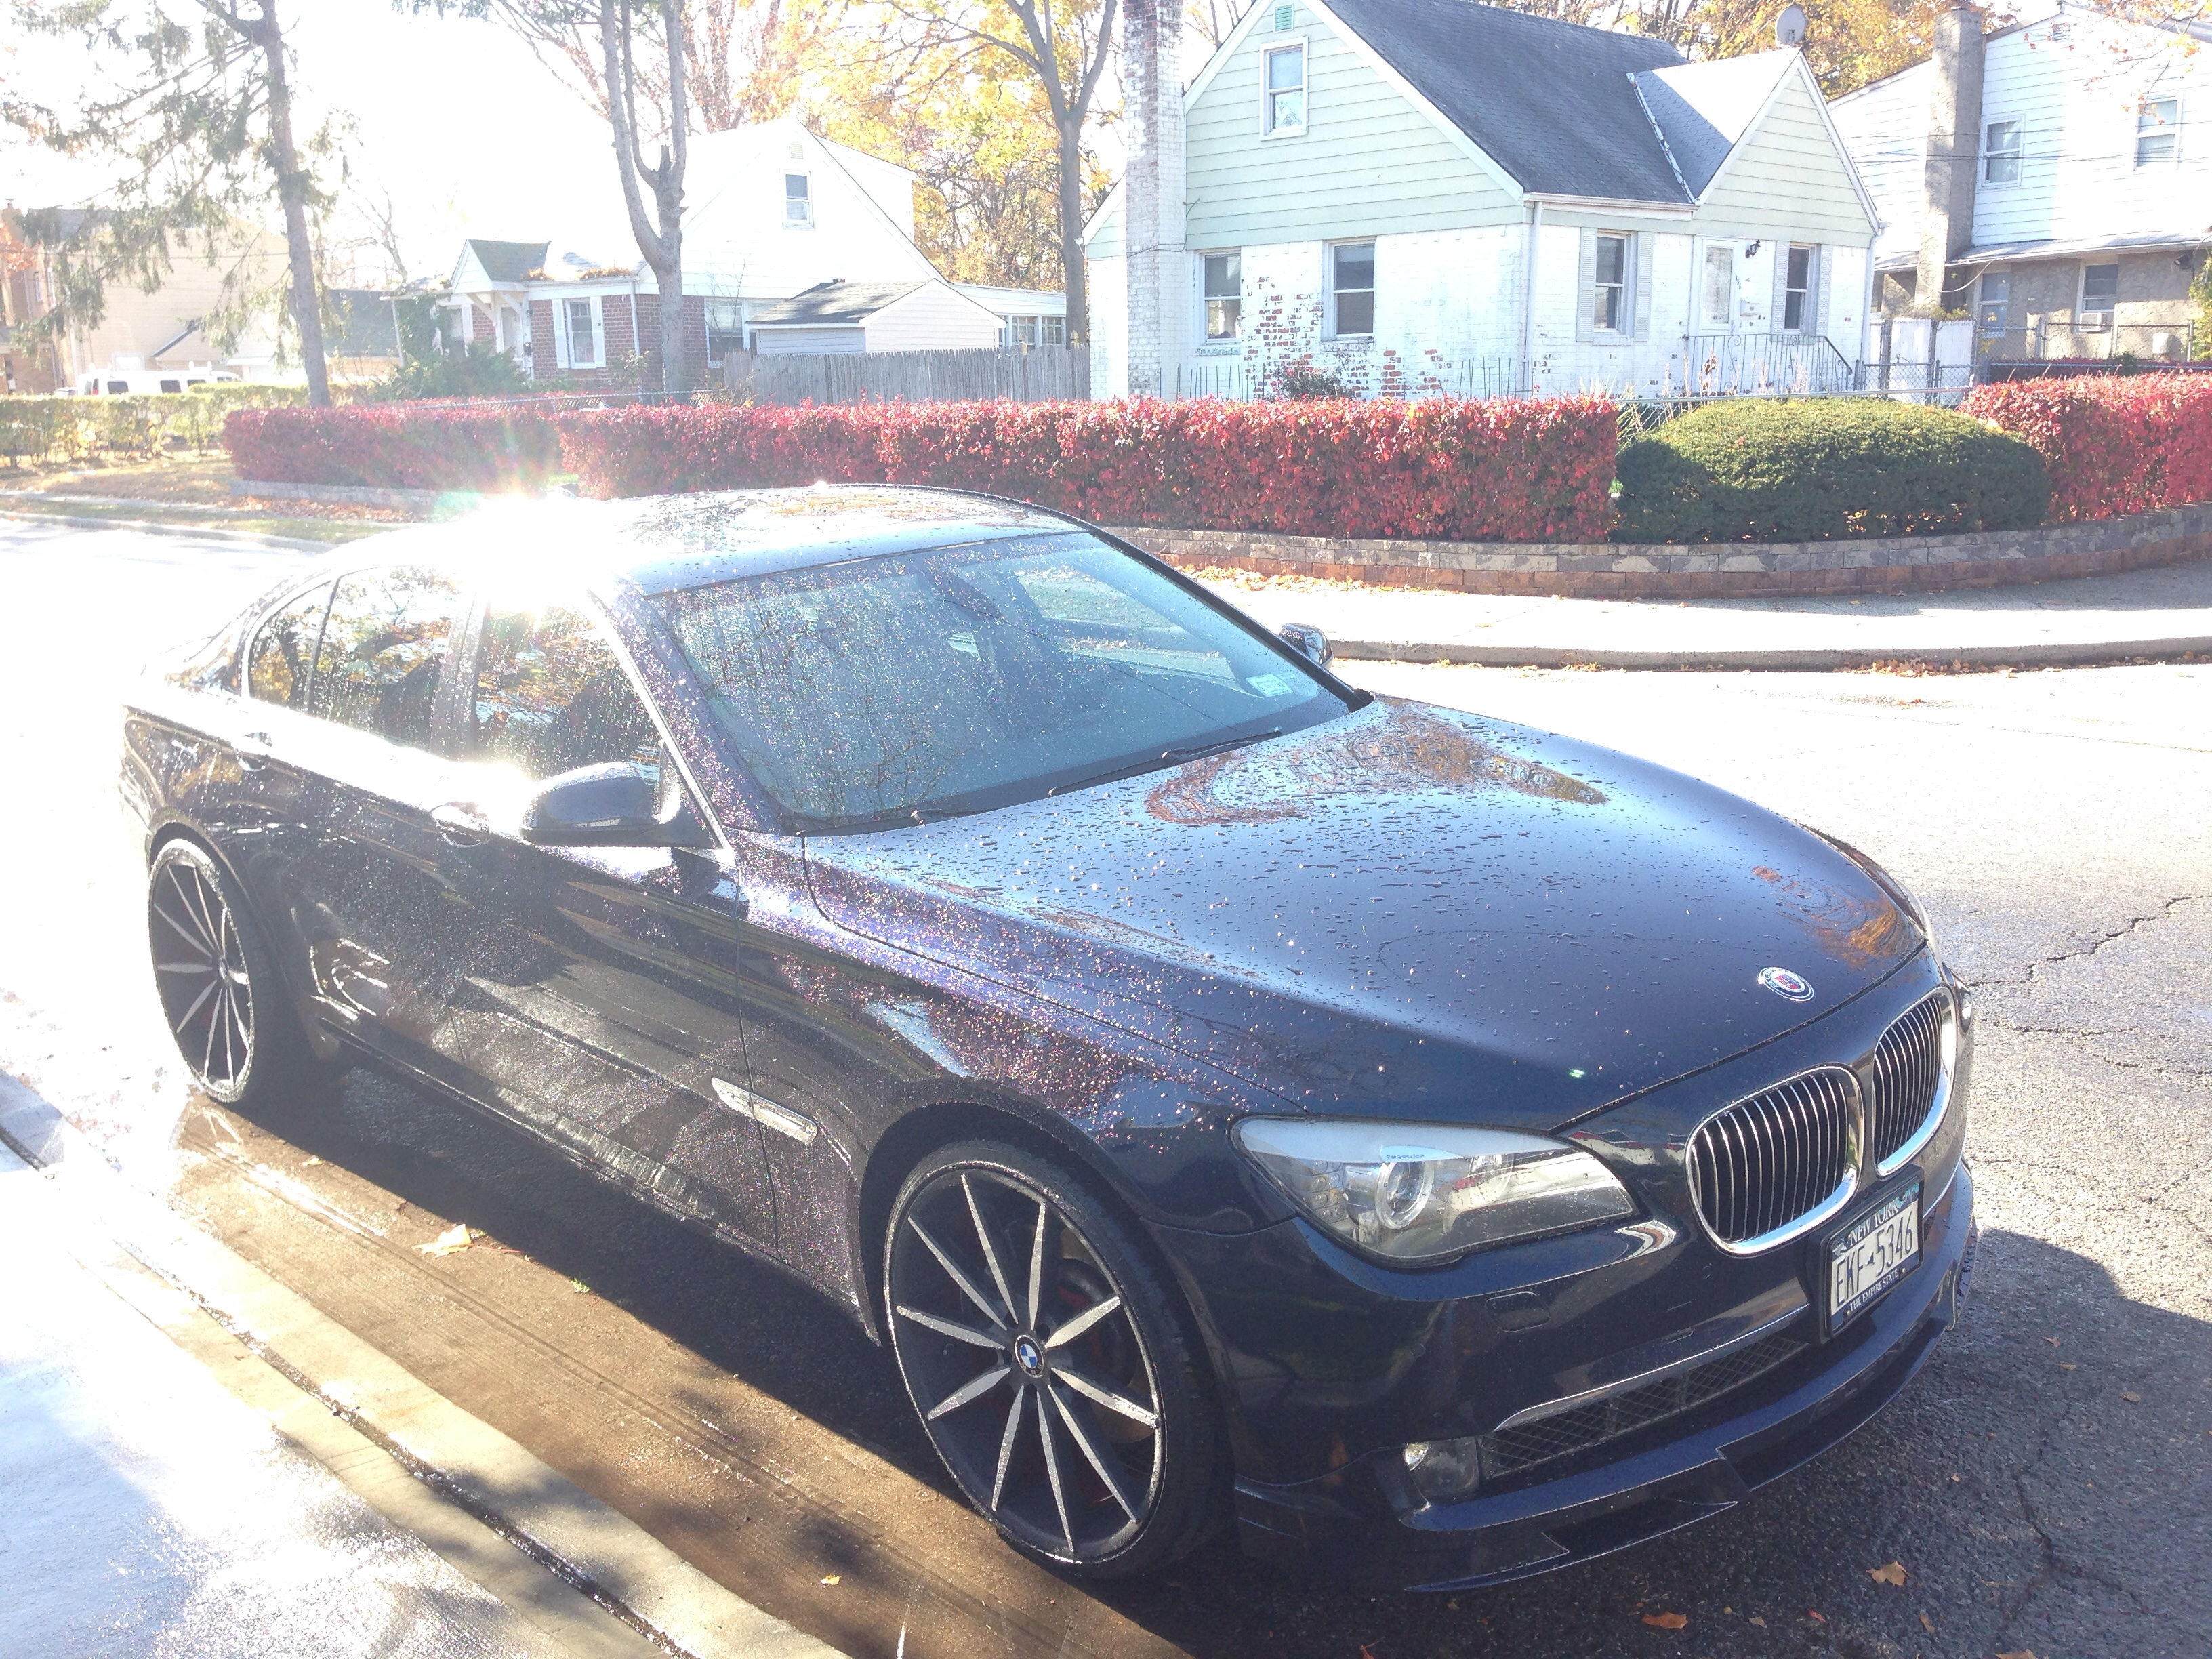 2011 Bmw Alpina B7 xdrive - 19034384